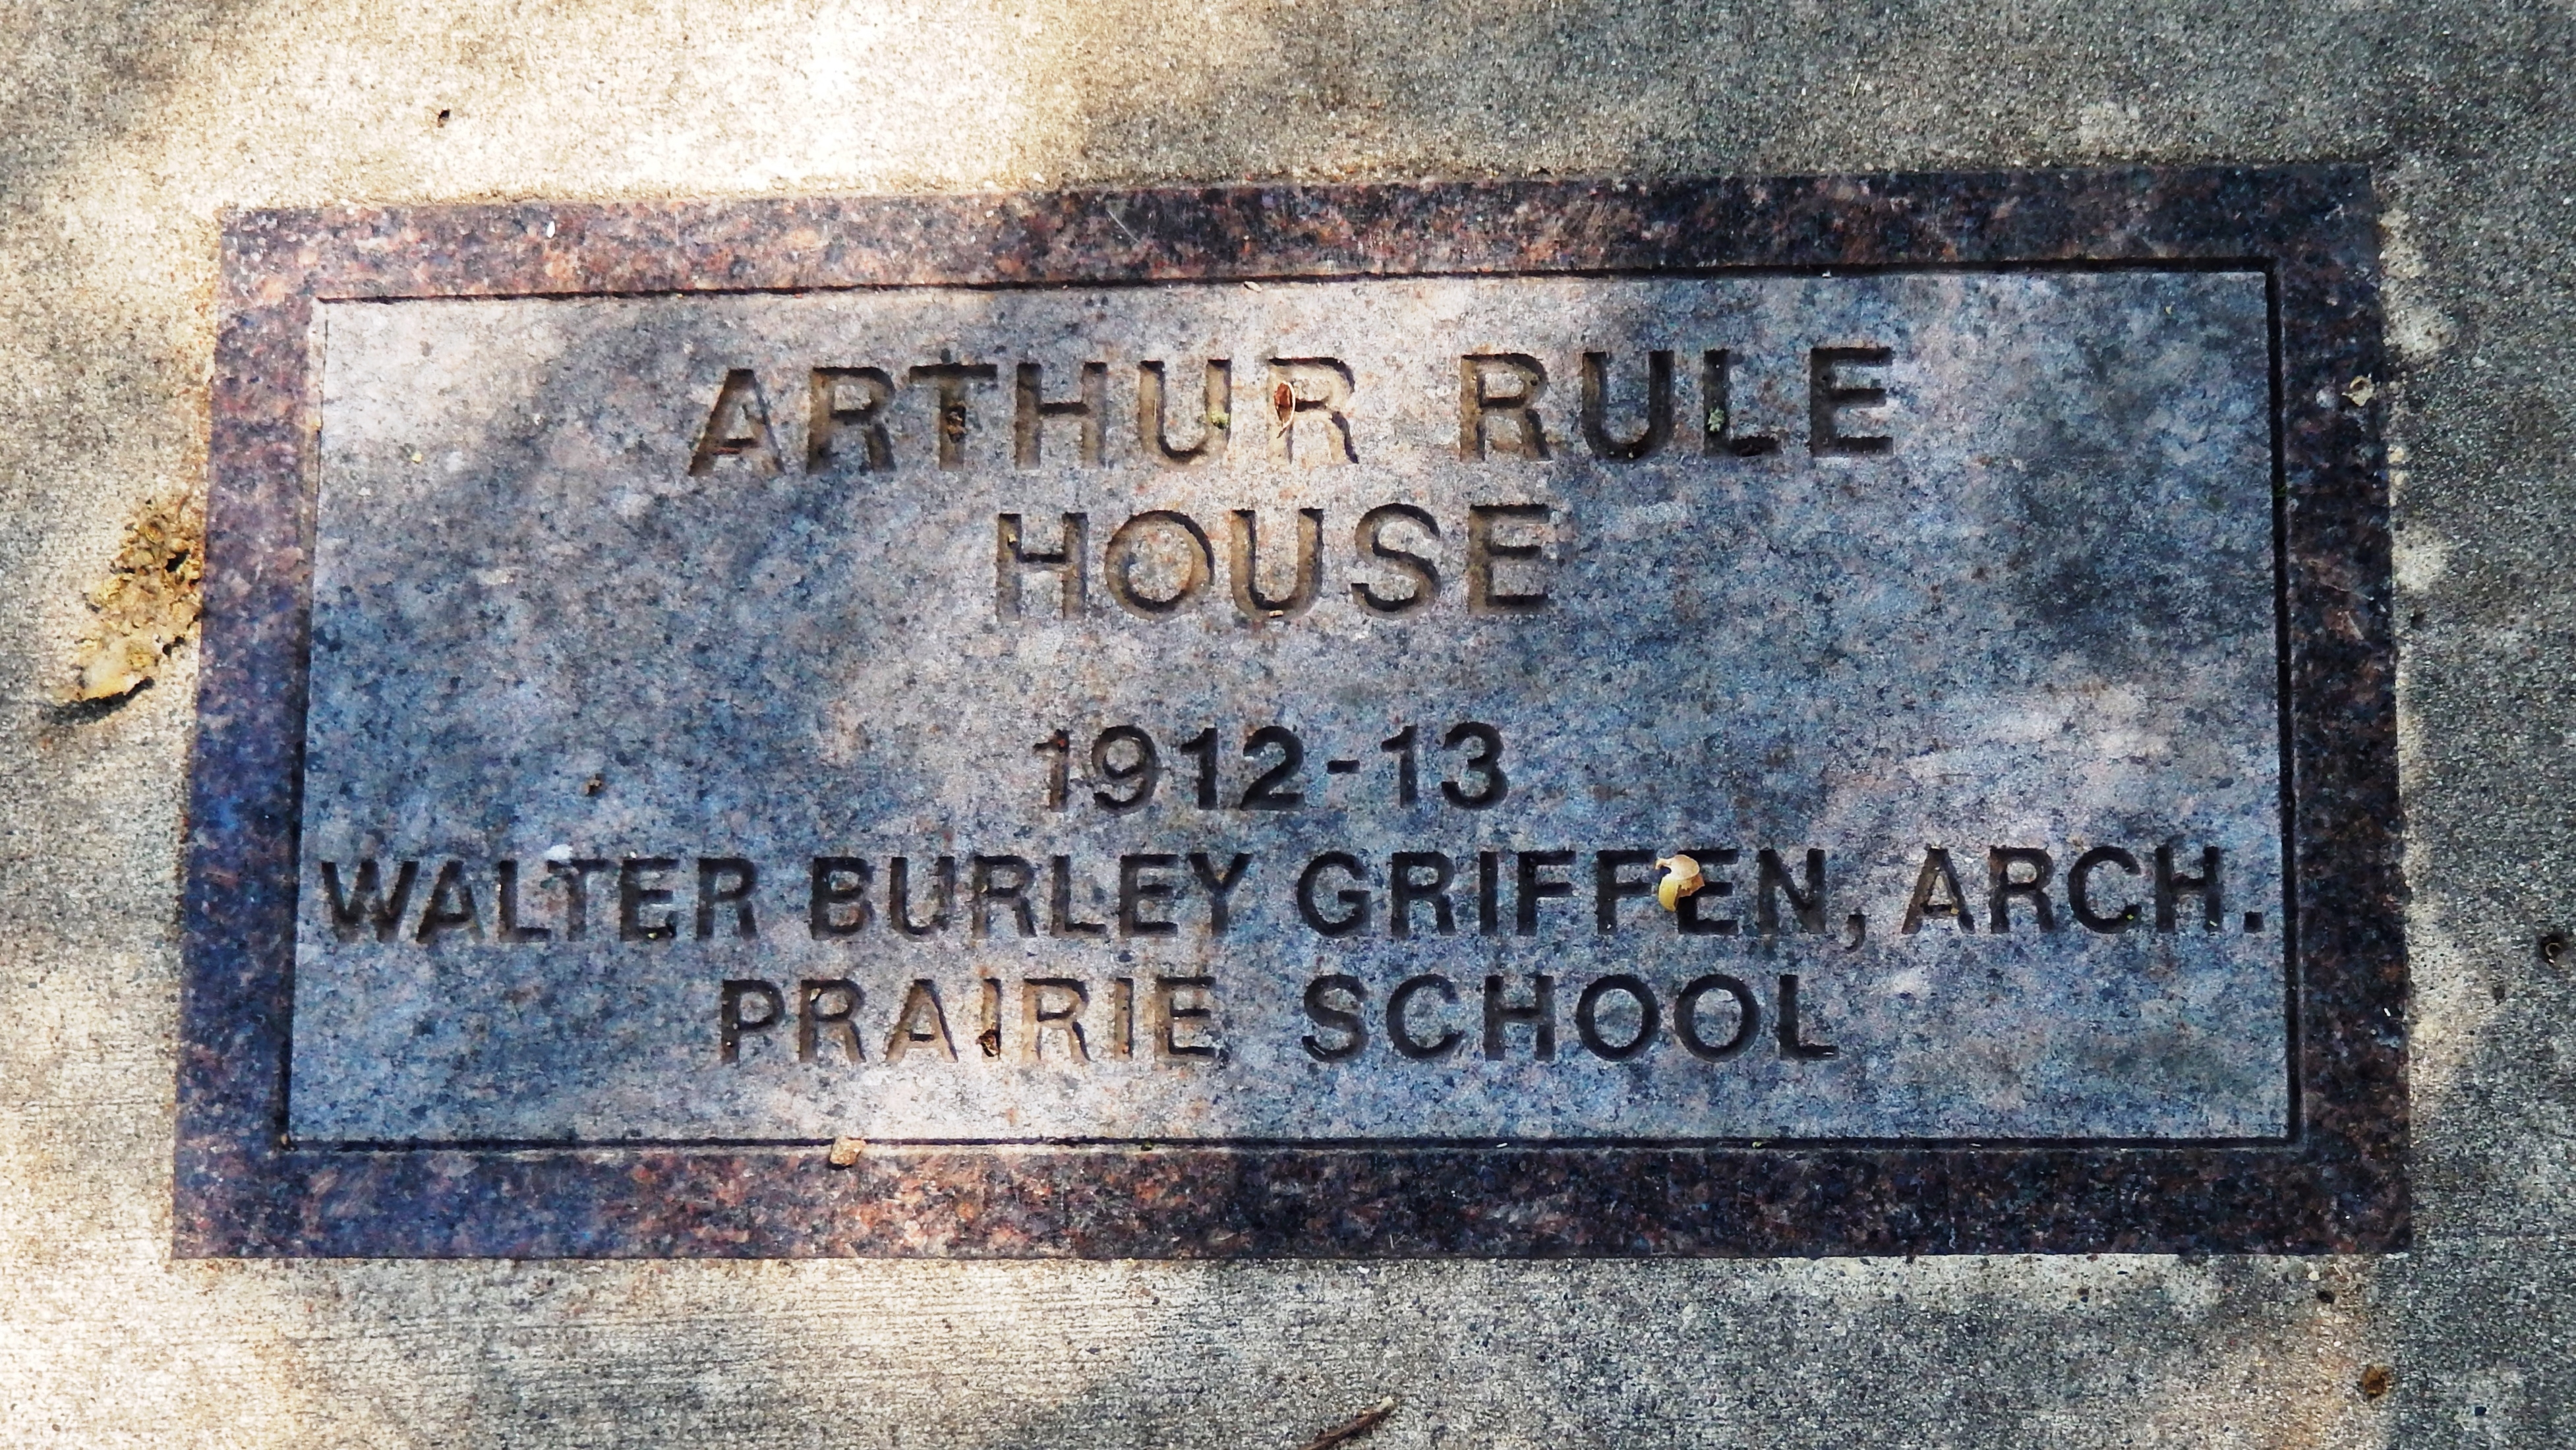 Arthur Rule House Marker